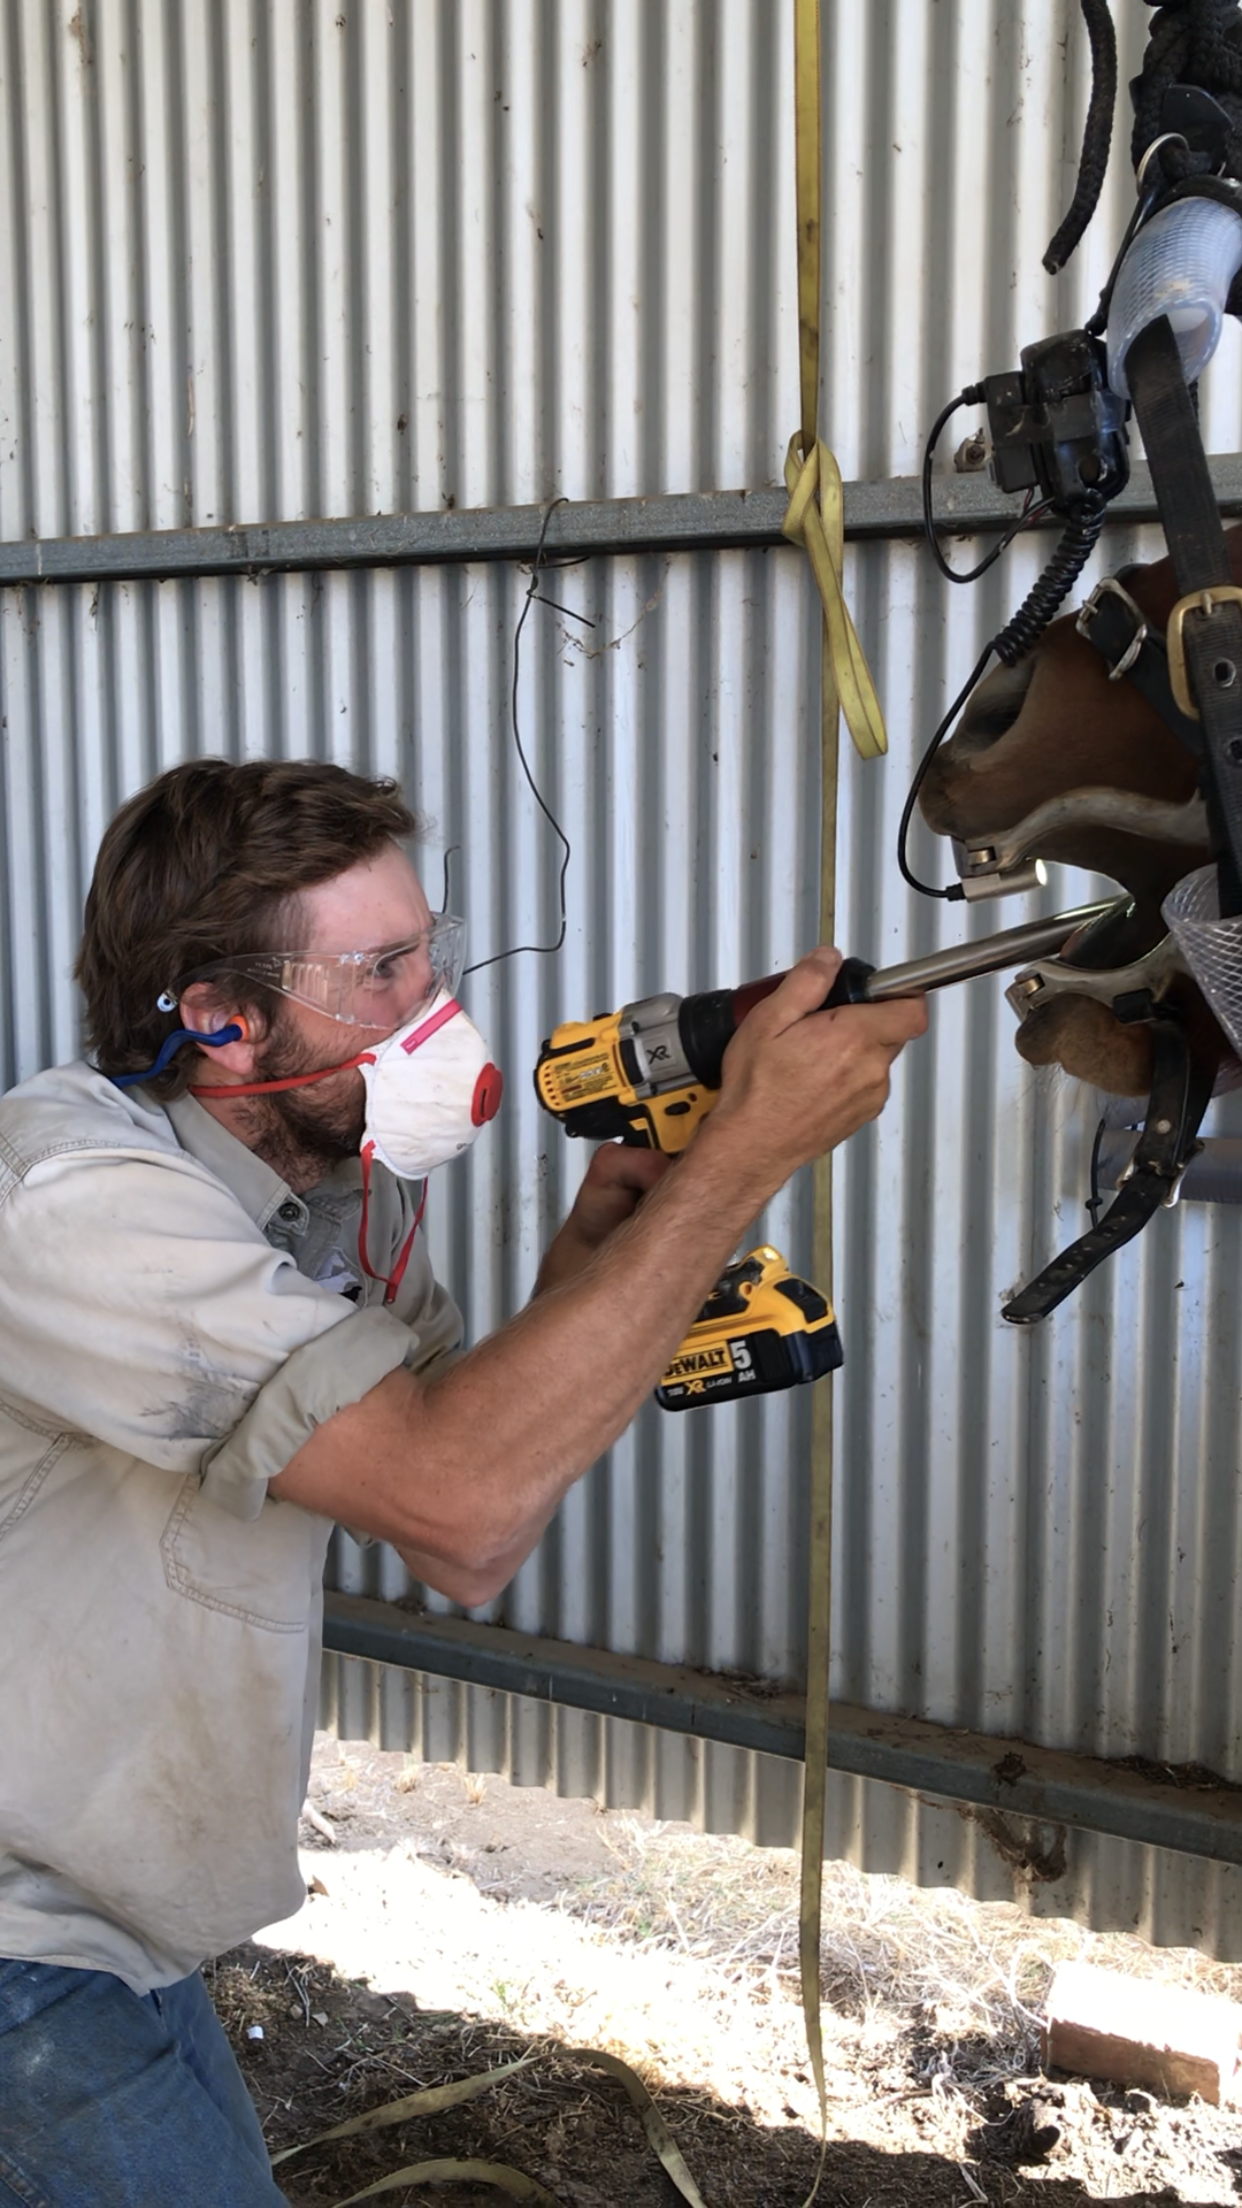 Background - Coolac vet Services started in 1983 by Dr Bill Graham and in 2012 his son Dr Tom Graham joined the practice. Bill graduated from Sydney University with a BVSc in 1979 and Tom graduated from Sydney University with a BVSc in 2009. Both Bill and Tom grew up and live on farms in the Gundagai region and together they run a large primary production business which includes the Bongongo Angus Stud.